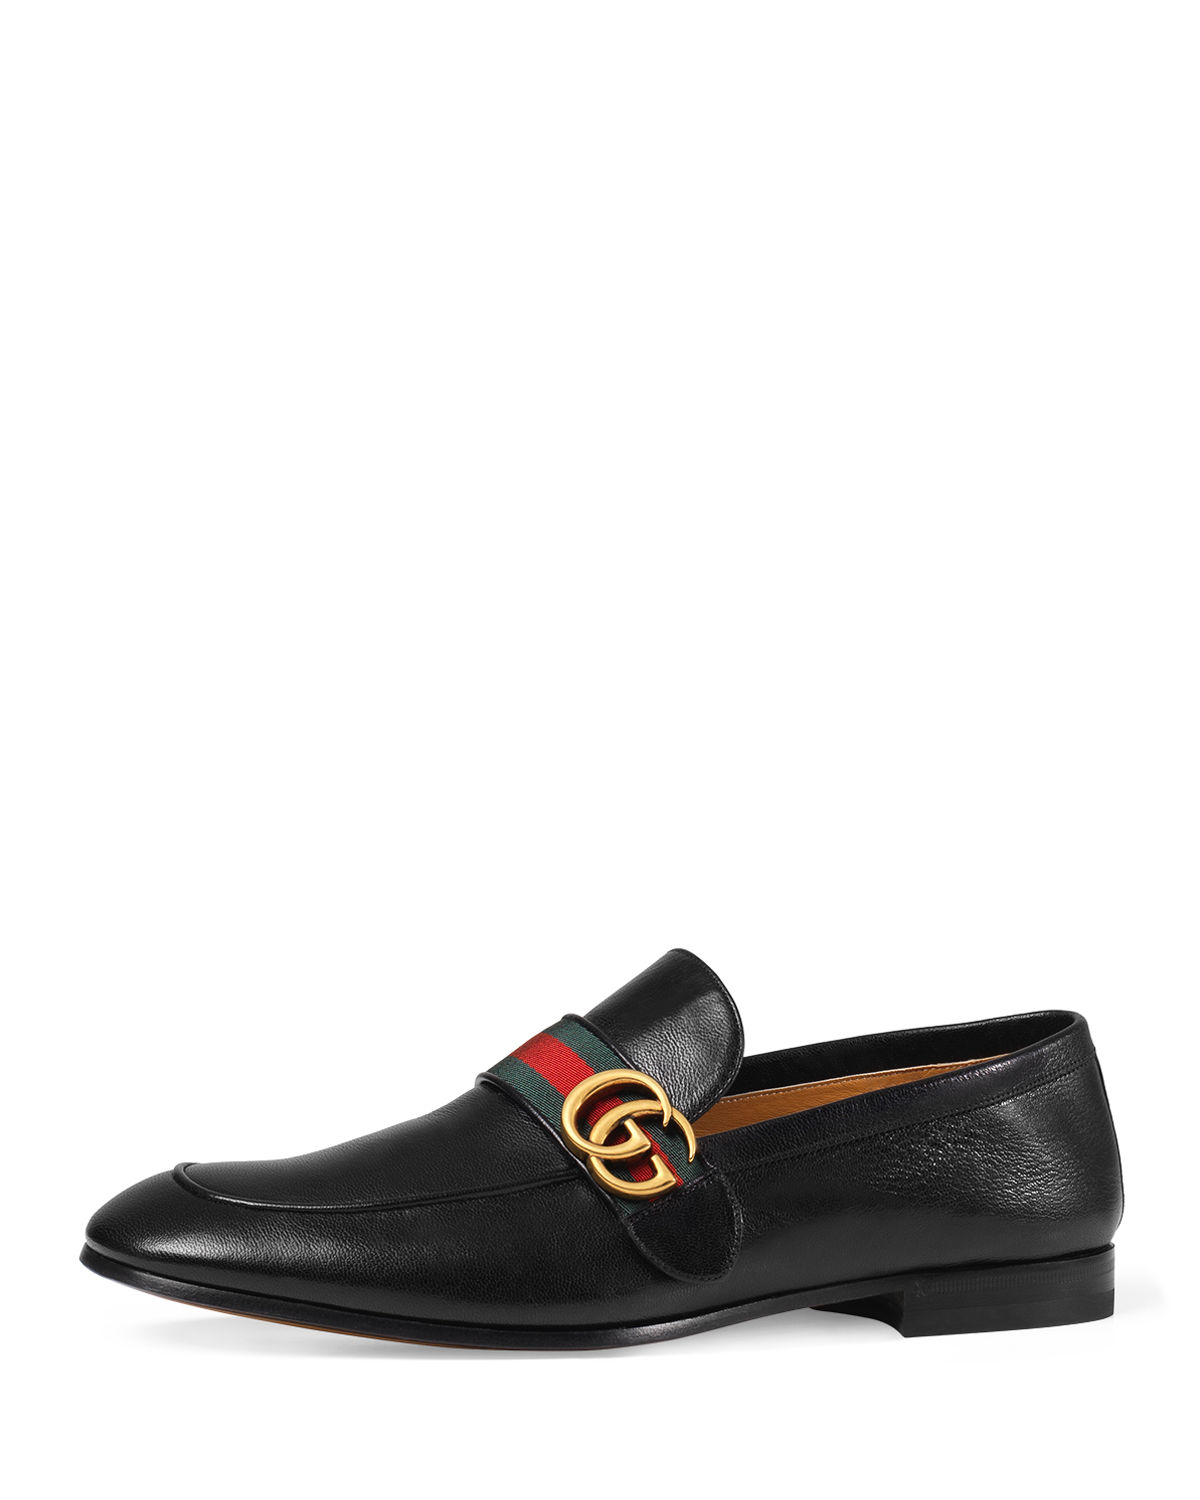 f799bbdfb9b Gucci Donnie Web Leather Loafer